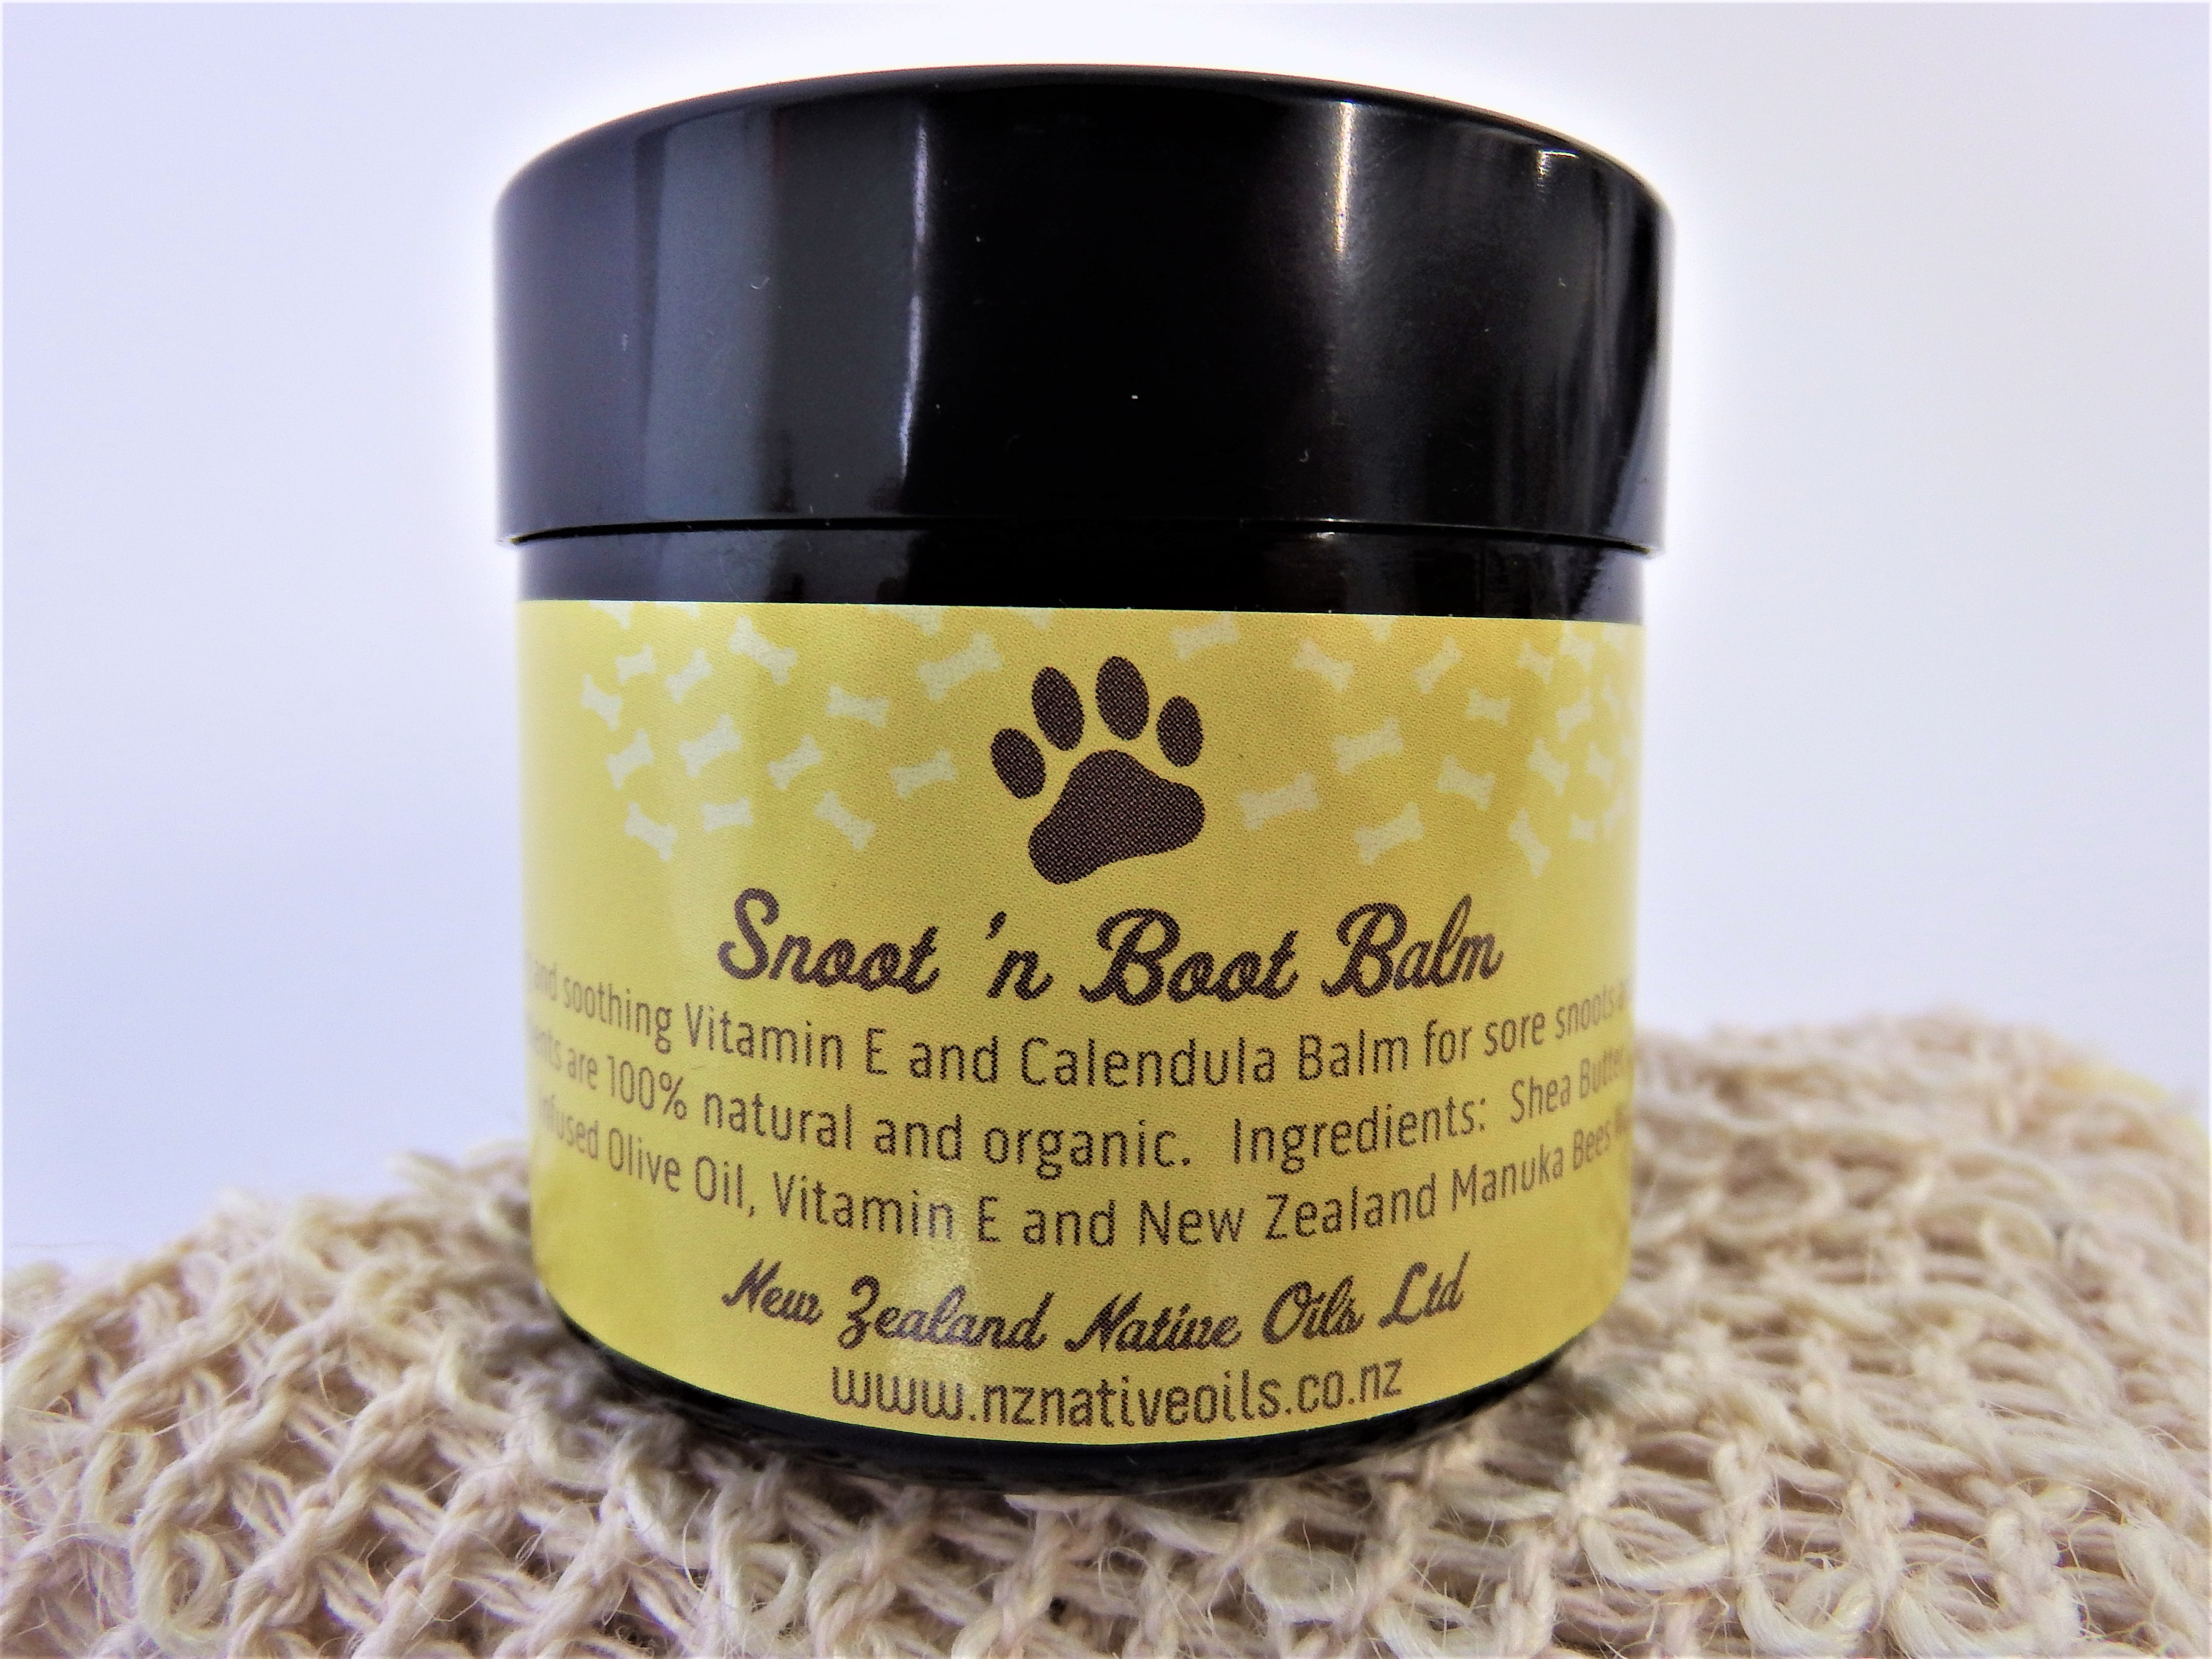 Snoot n boot balm